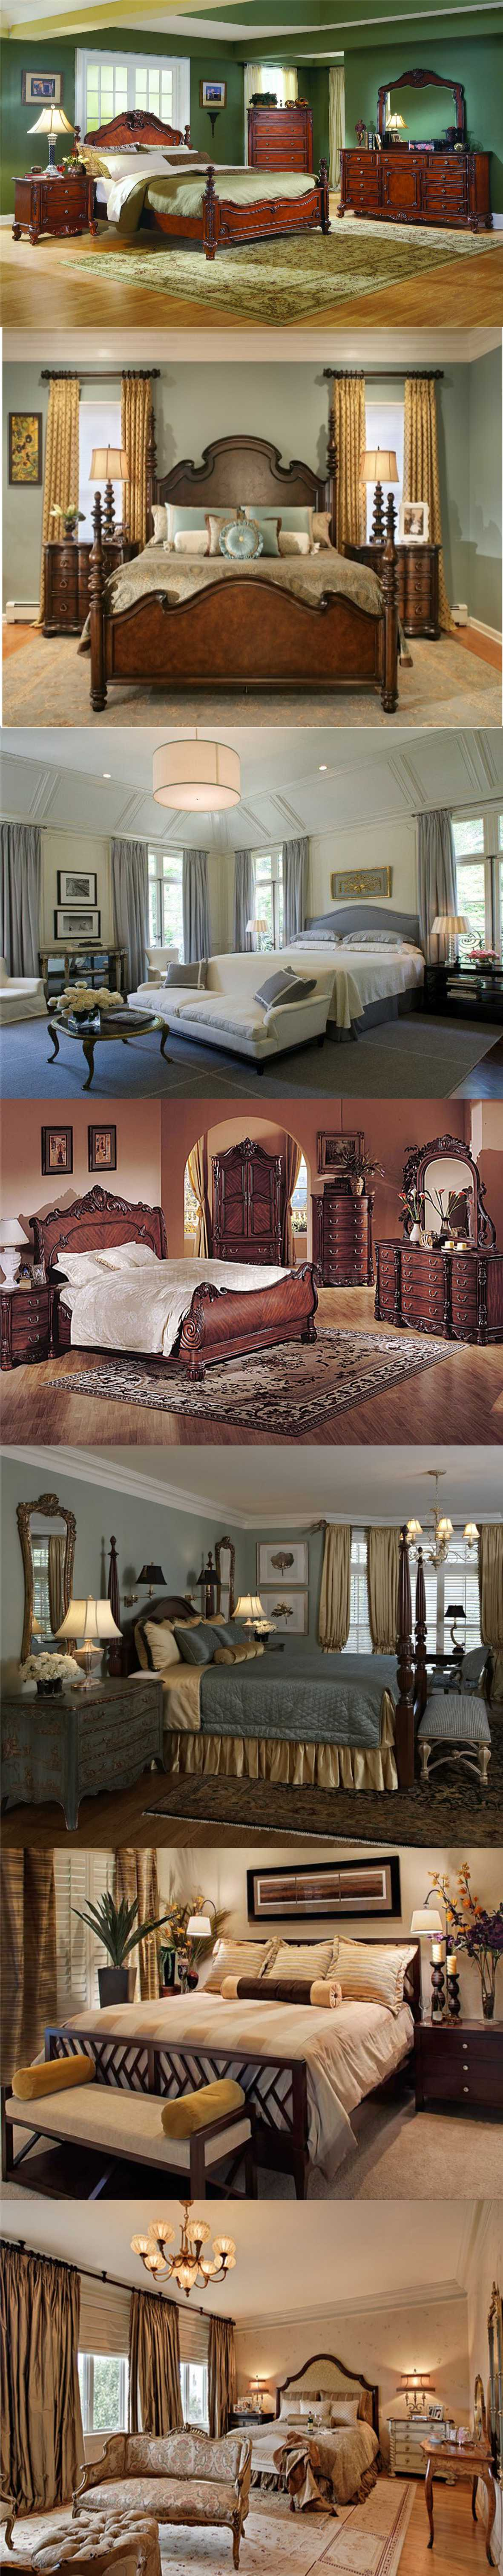 Best traditional bedroom designs 2018